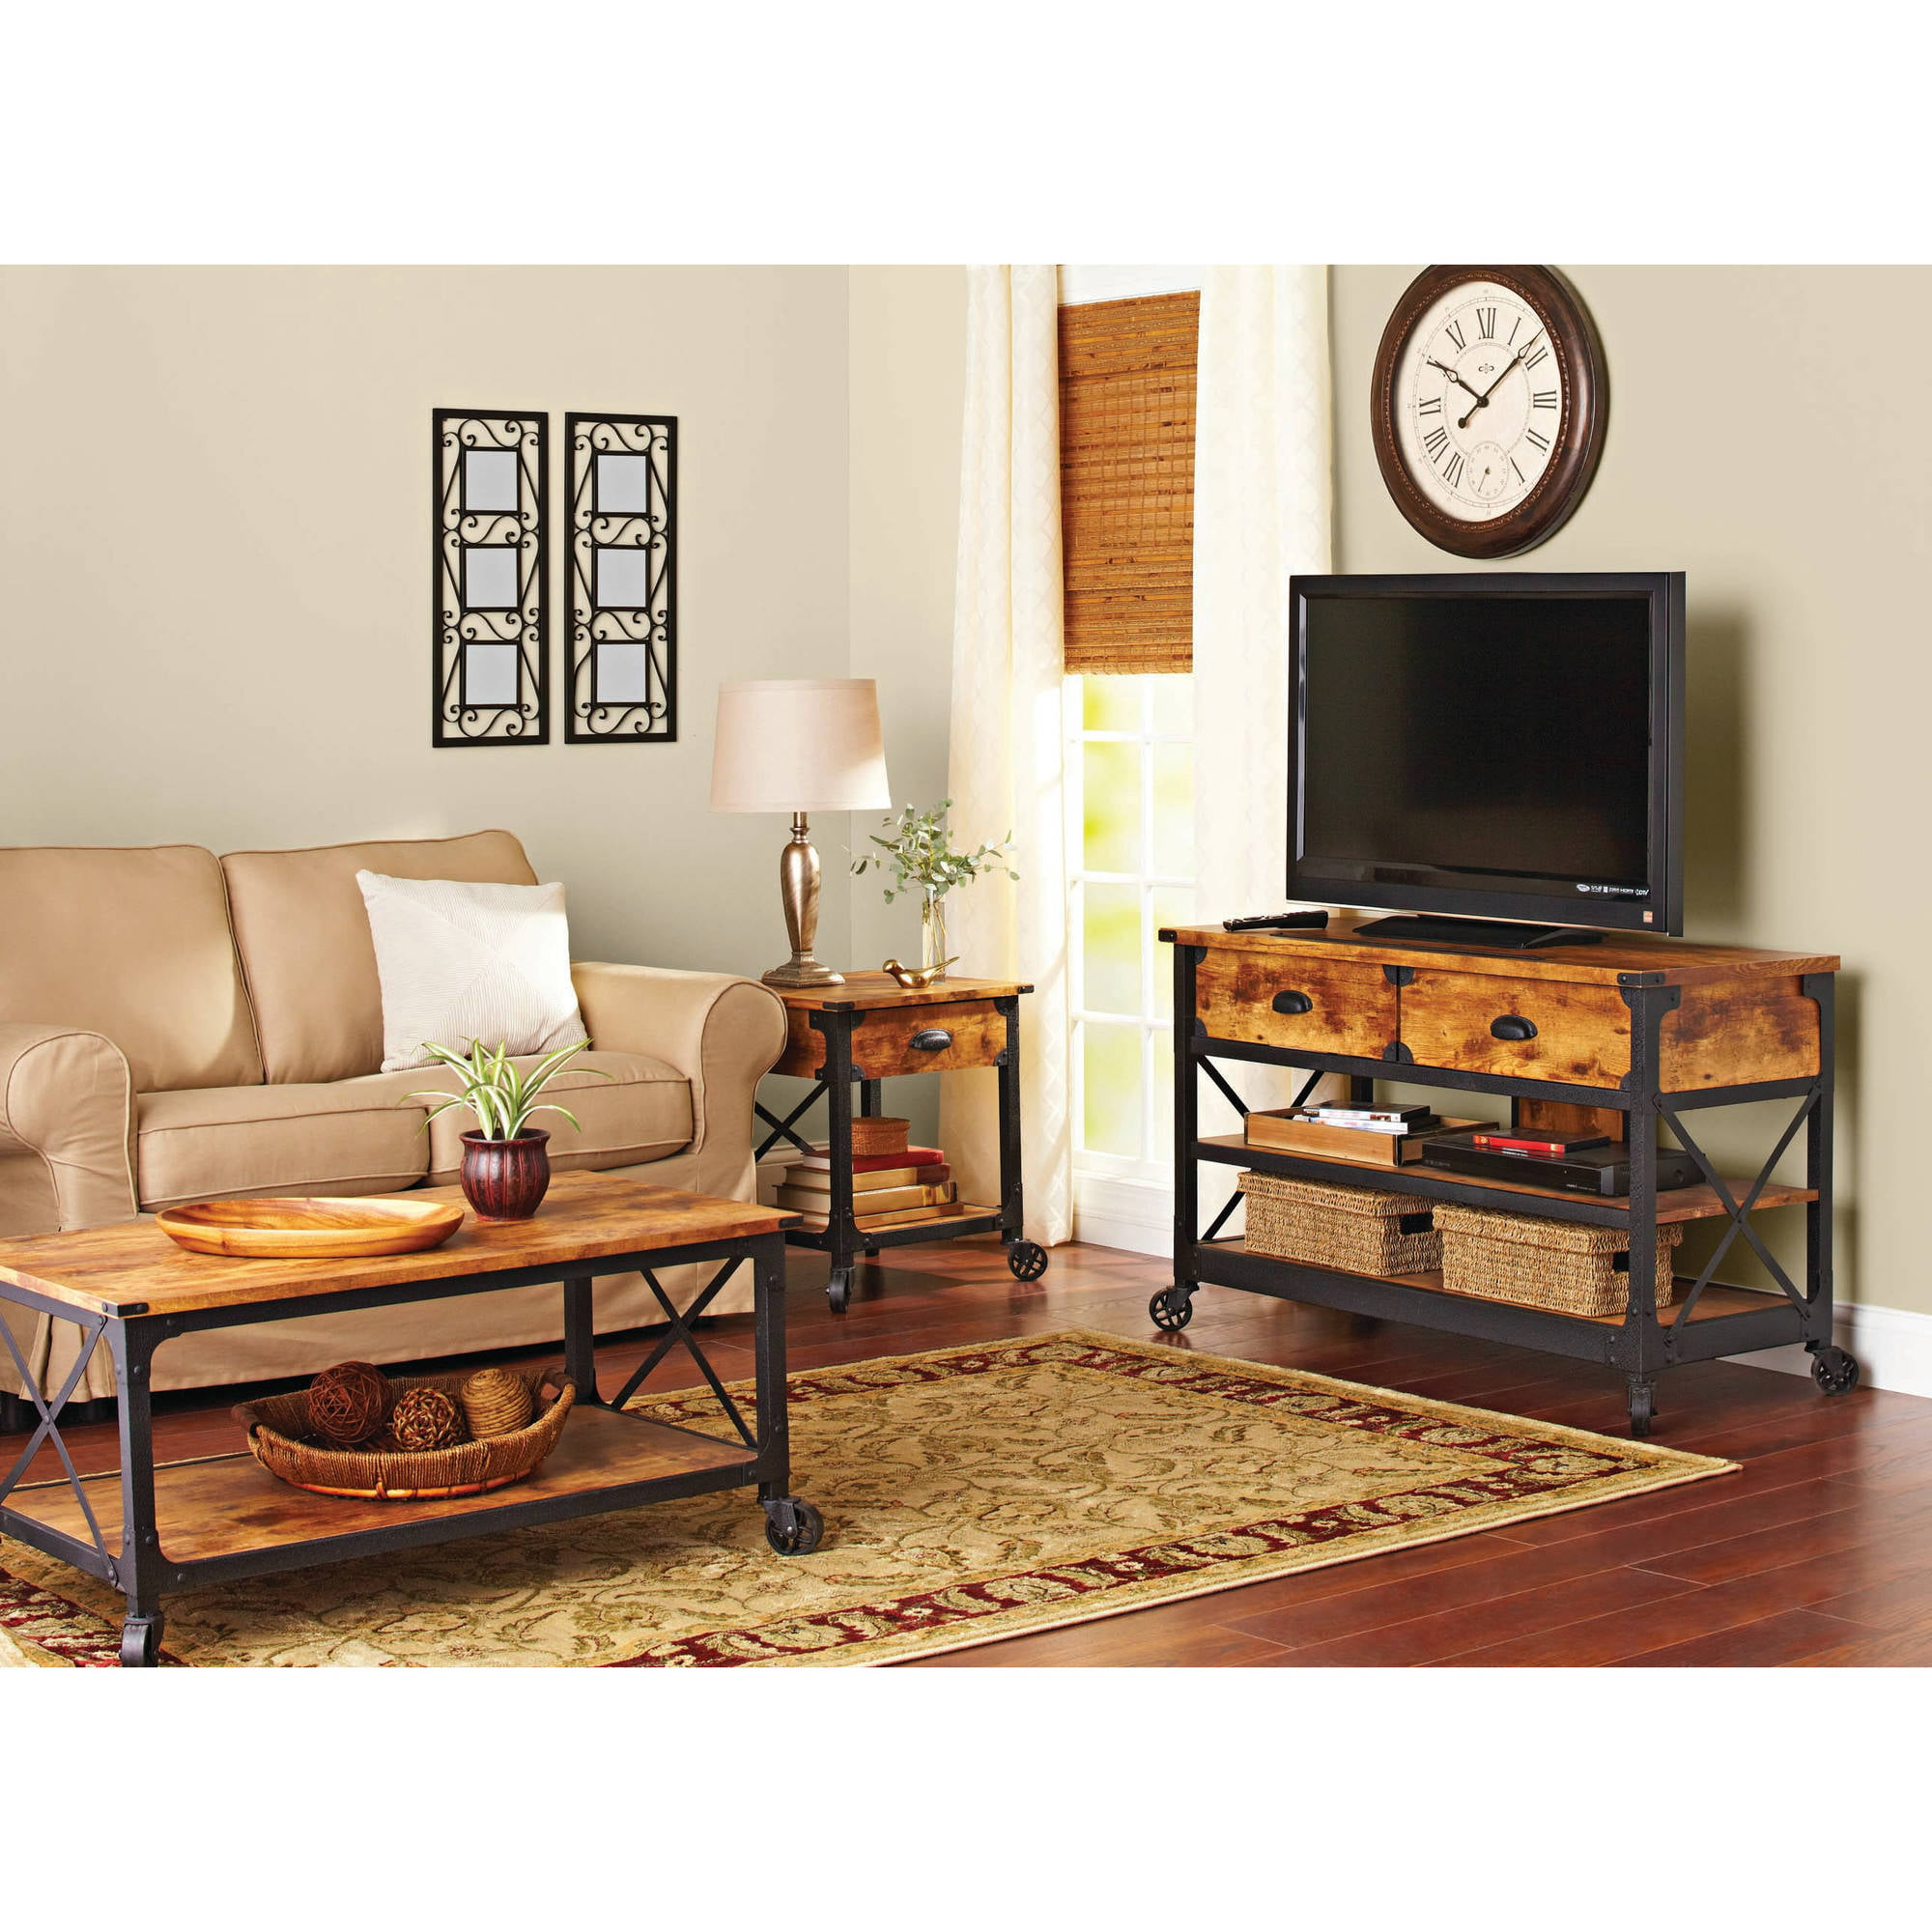 Amazing Better Homes And Gardens Rustic Country Living Room Set   Walmart.com